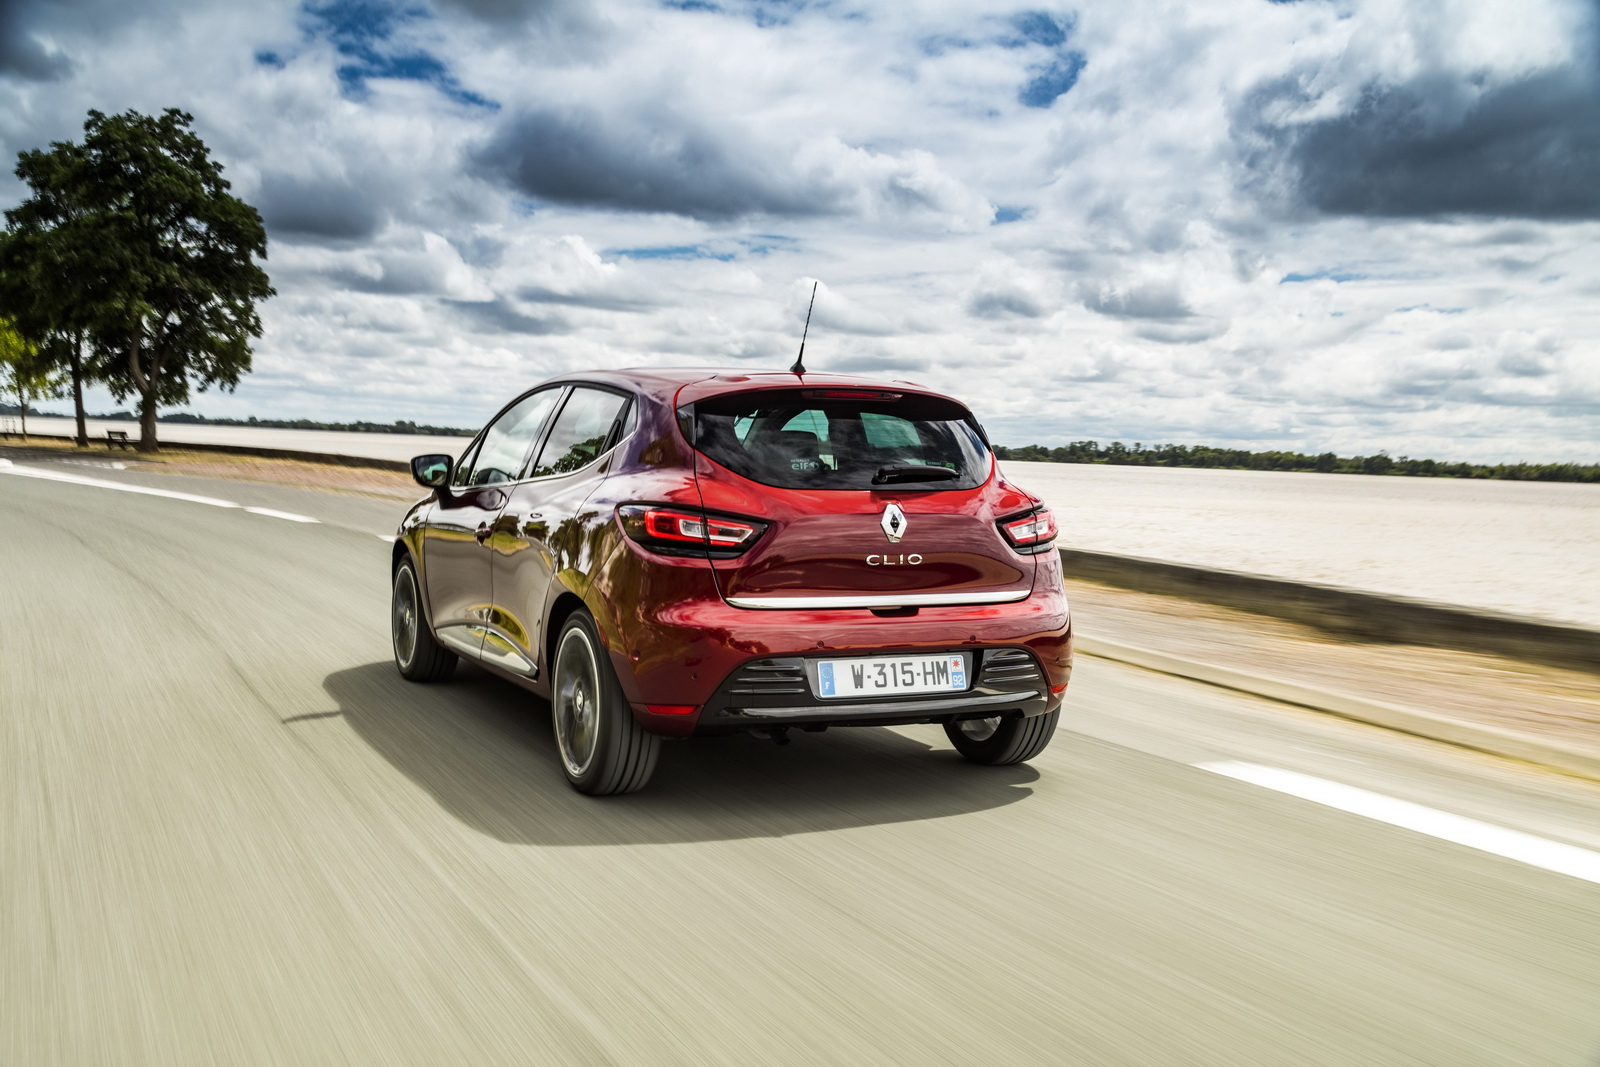 Renault Drops More Images Of The Updated Clio | Carscoops